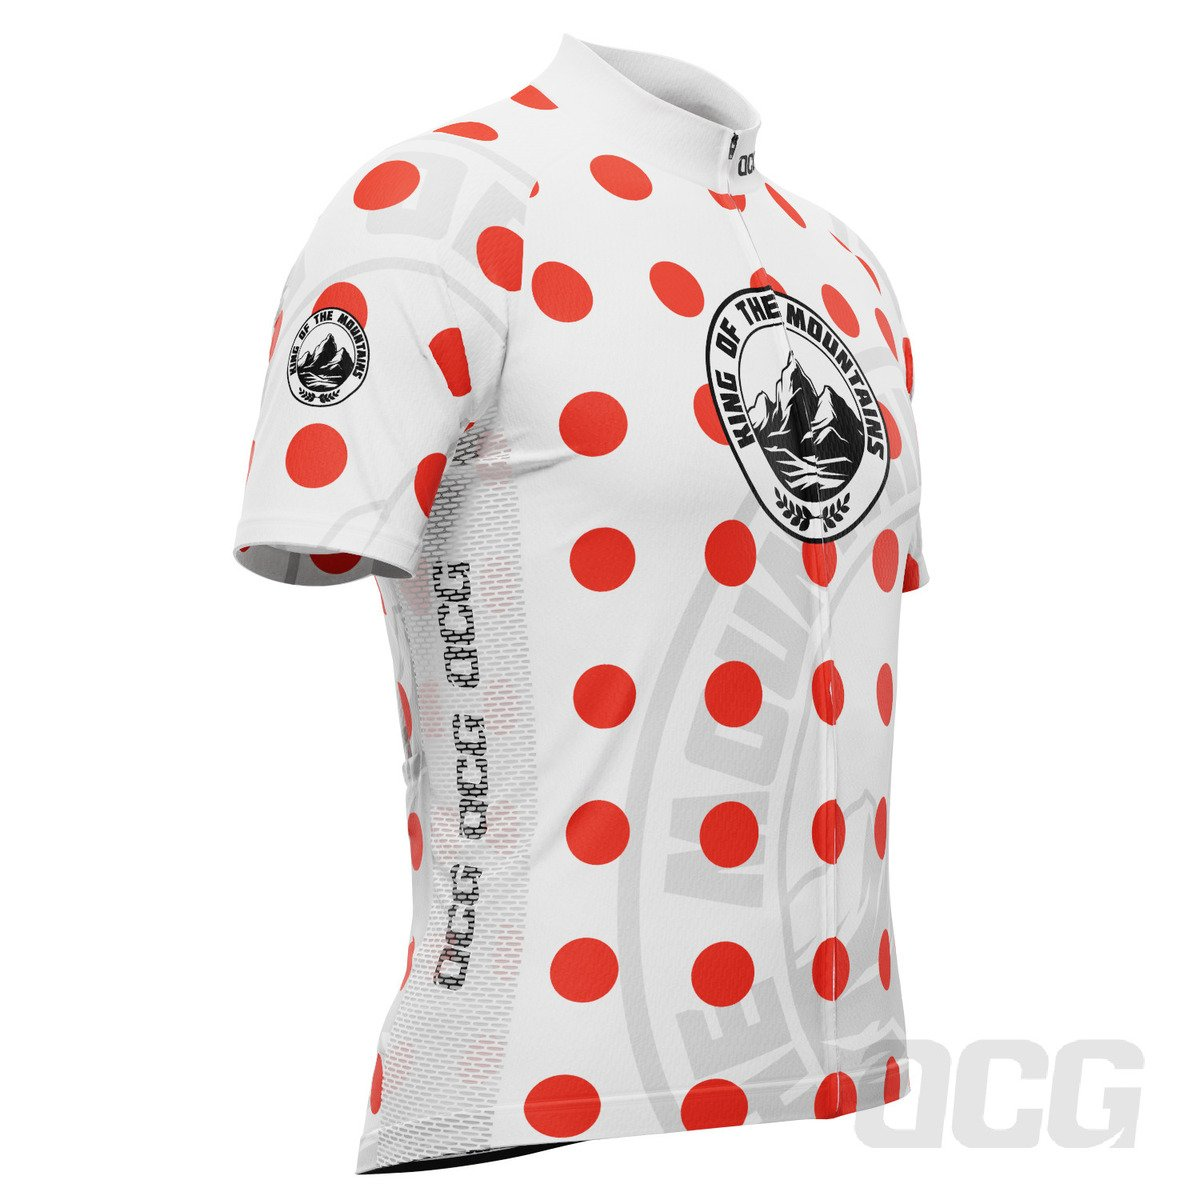 Men's King of the Mountains Polka Dot Short Sleeve Cycling Jersey